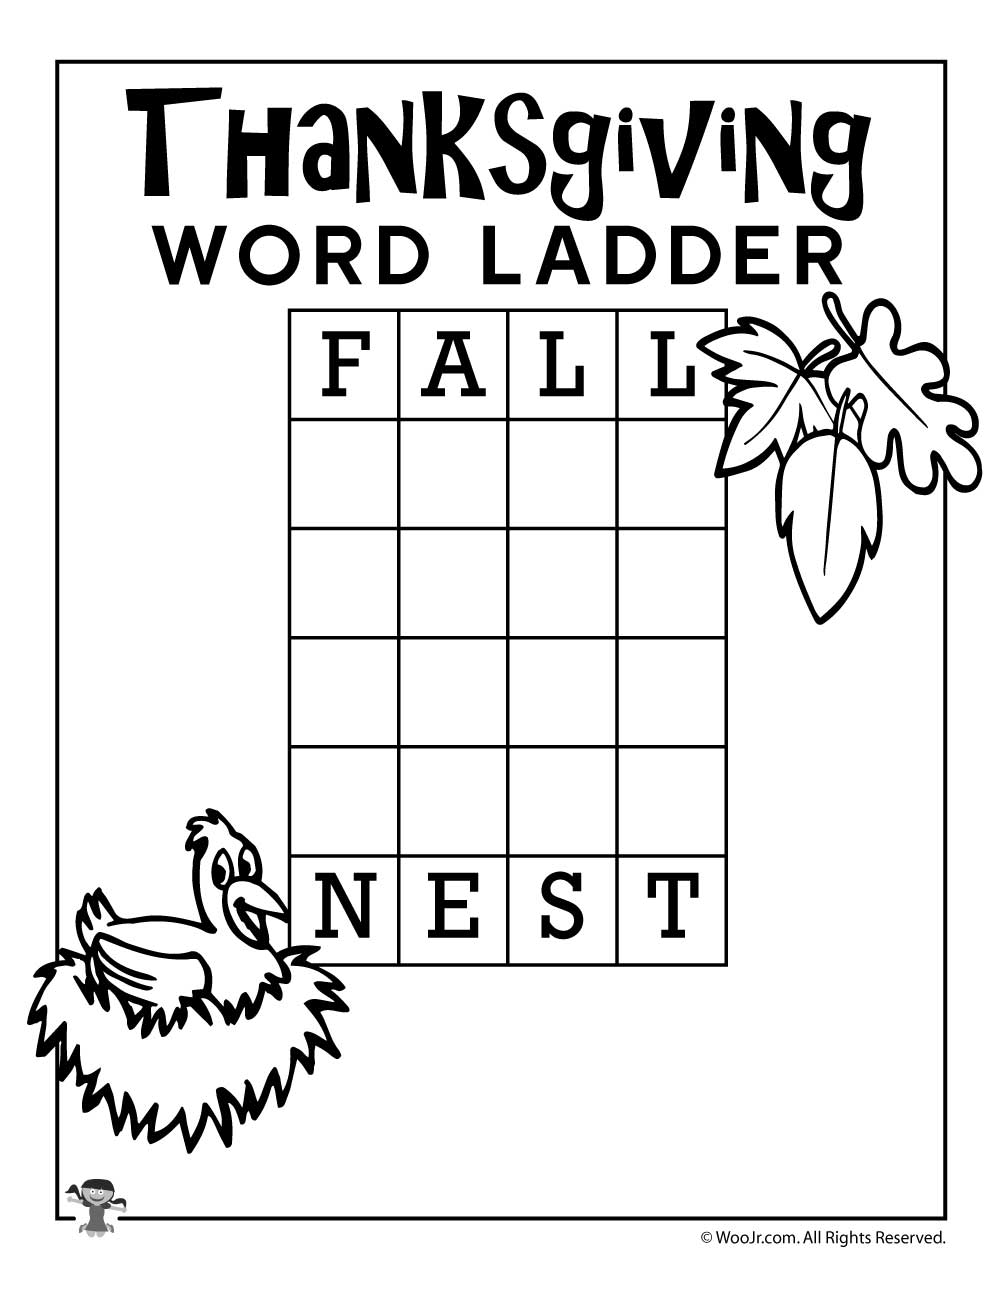 Worksheets Word Ladder Worksheets fall nest thanksgiving word ladder woo jr kids activities sharethis copy and paste